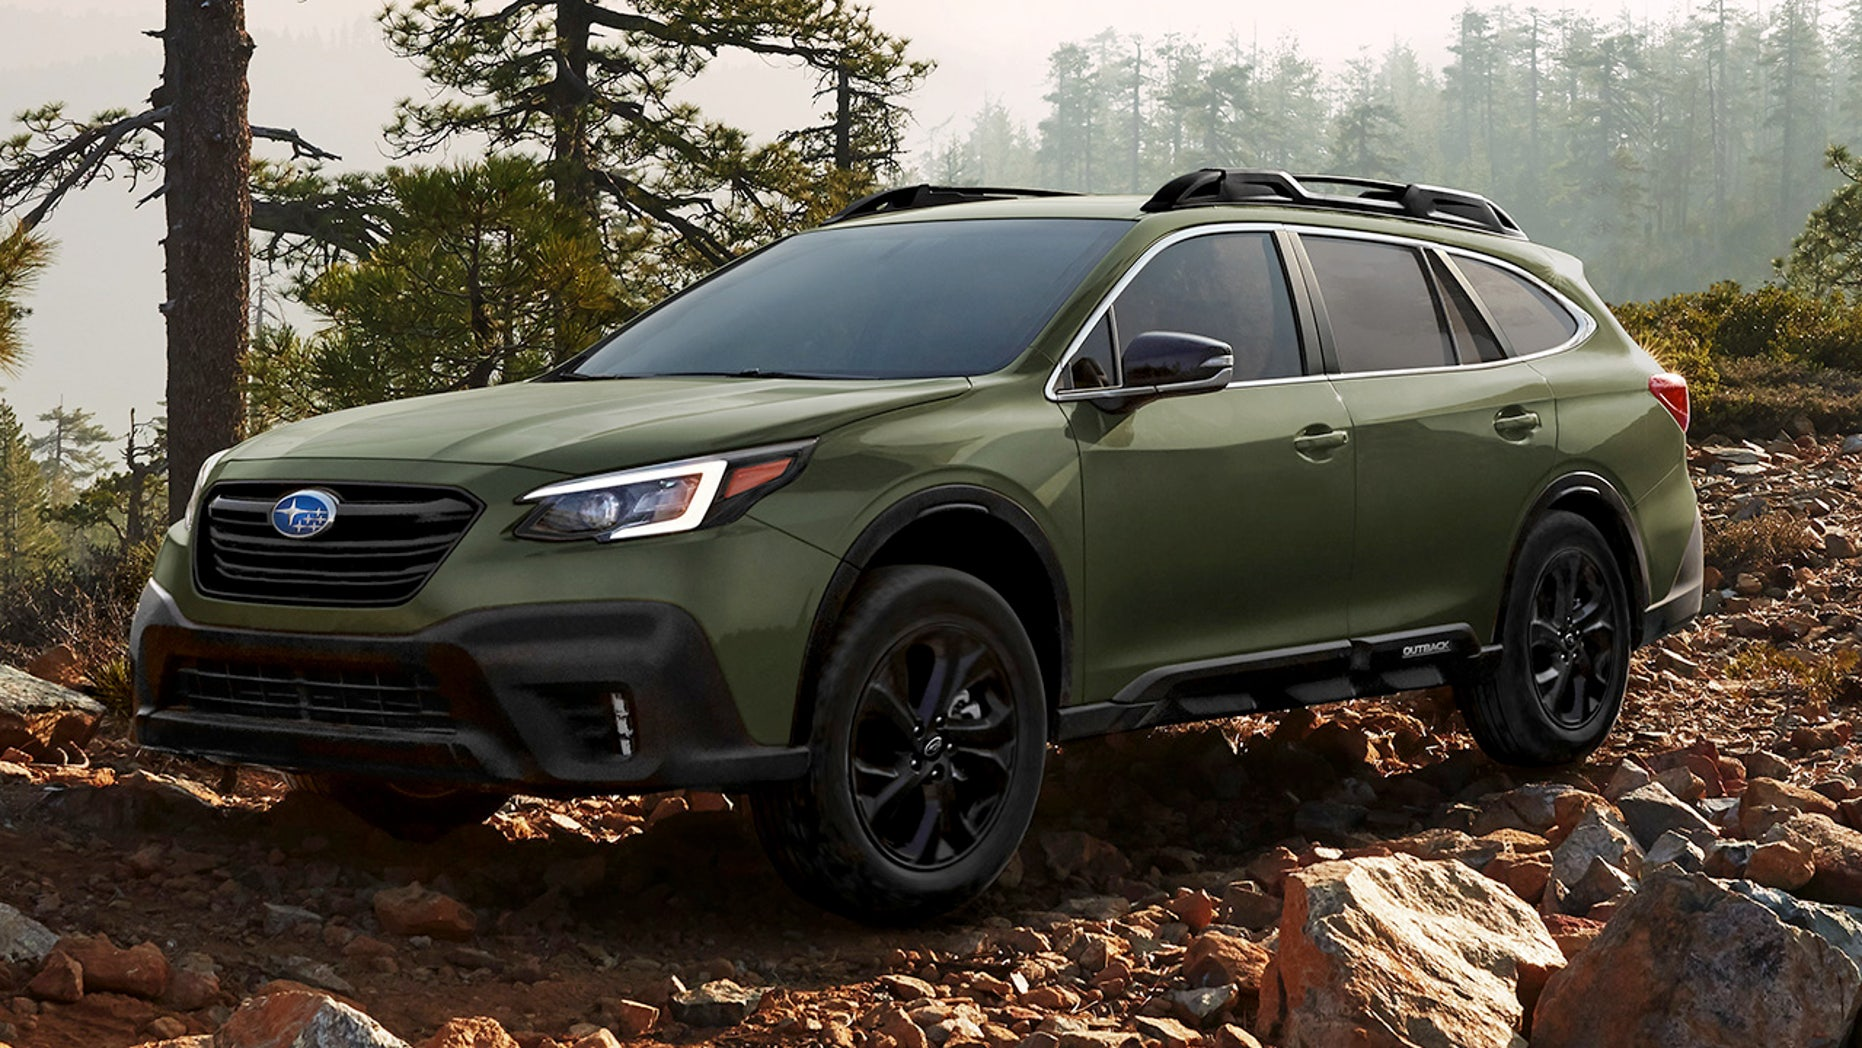 Westlake Legal Group subaru-1 The 2020 Subaru Outback looks the same, but is very different Gary Gastelu fox-news/news-events/new-york-auto-show fox-news/auto/style/suv fox-news/auto/make/subaru fox news fnc/auto fnc c76949b3-c66e-5eab-b8d7-2c5630879b82 article